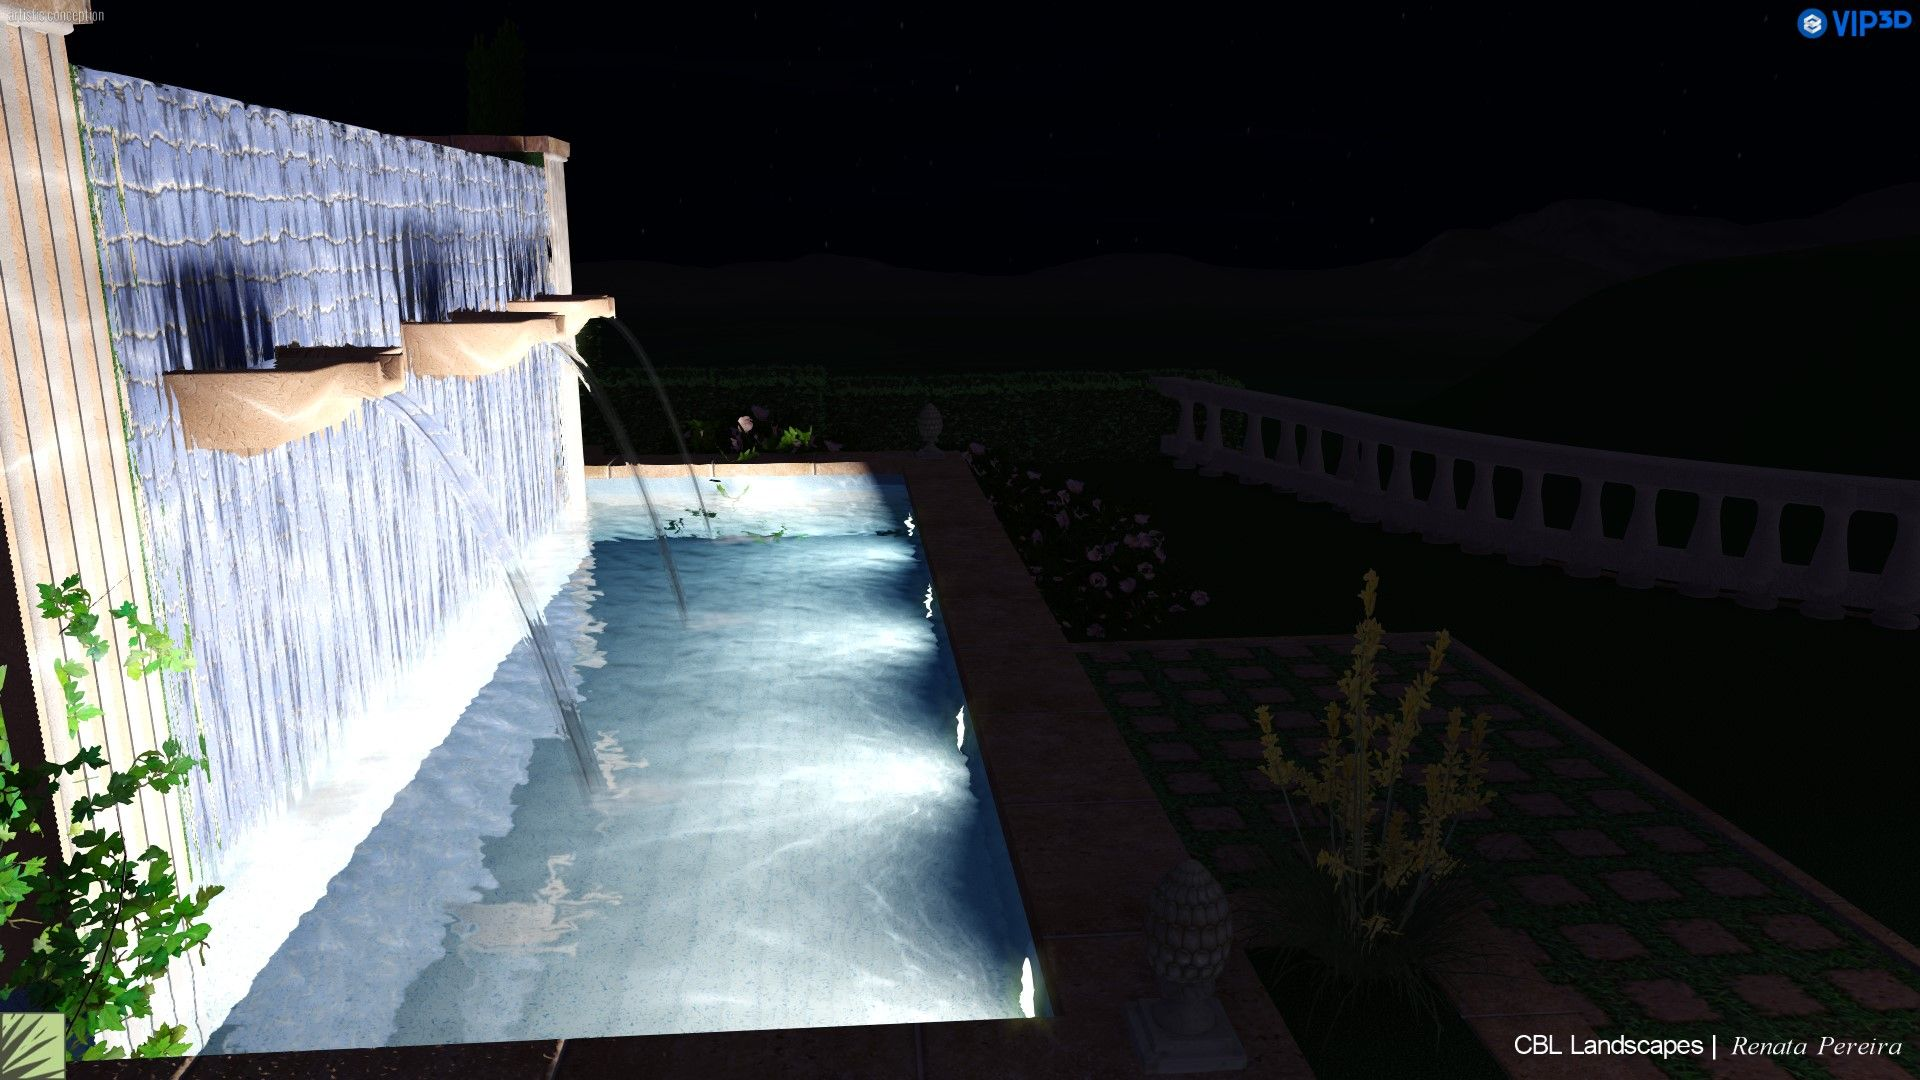 Garden landscape night  Pin by CBL Landscapes on Infinty Pool in Beverly Hills  Pinterest